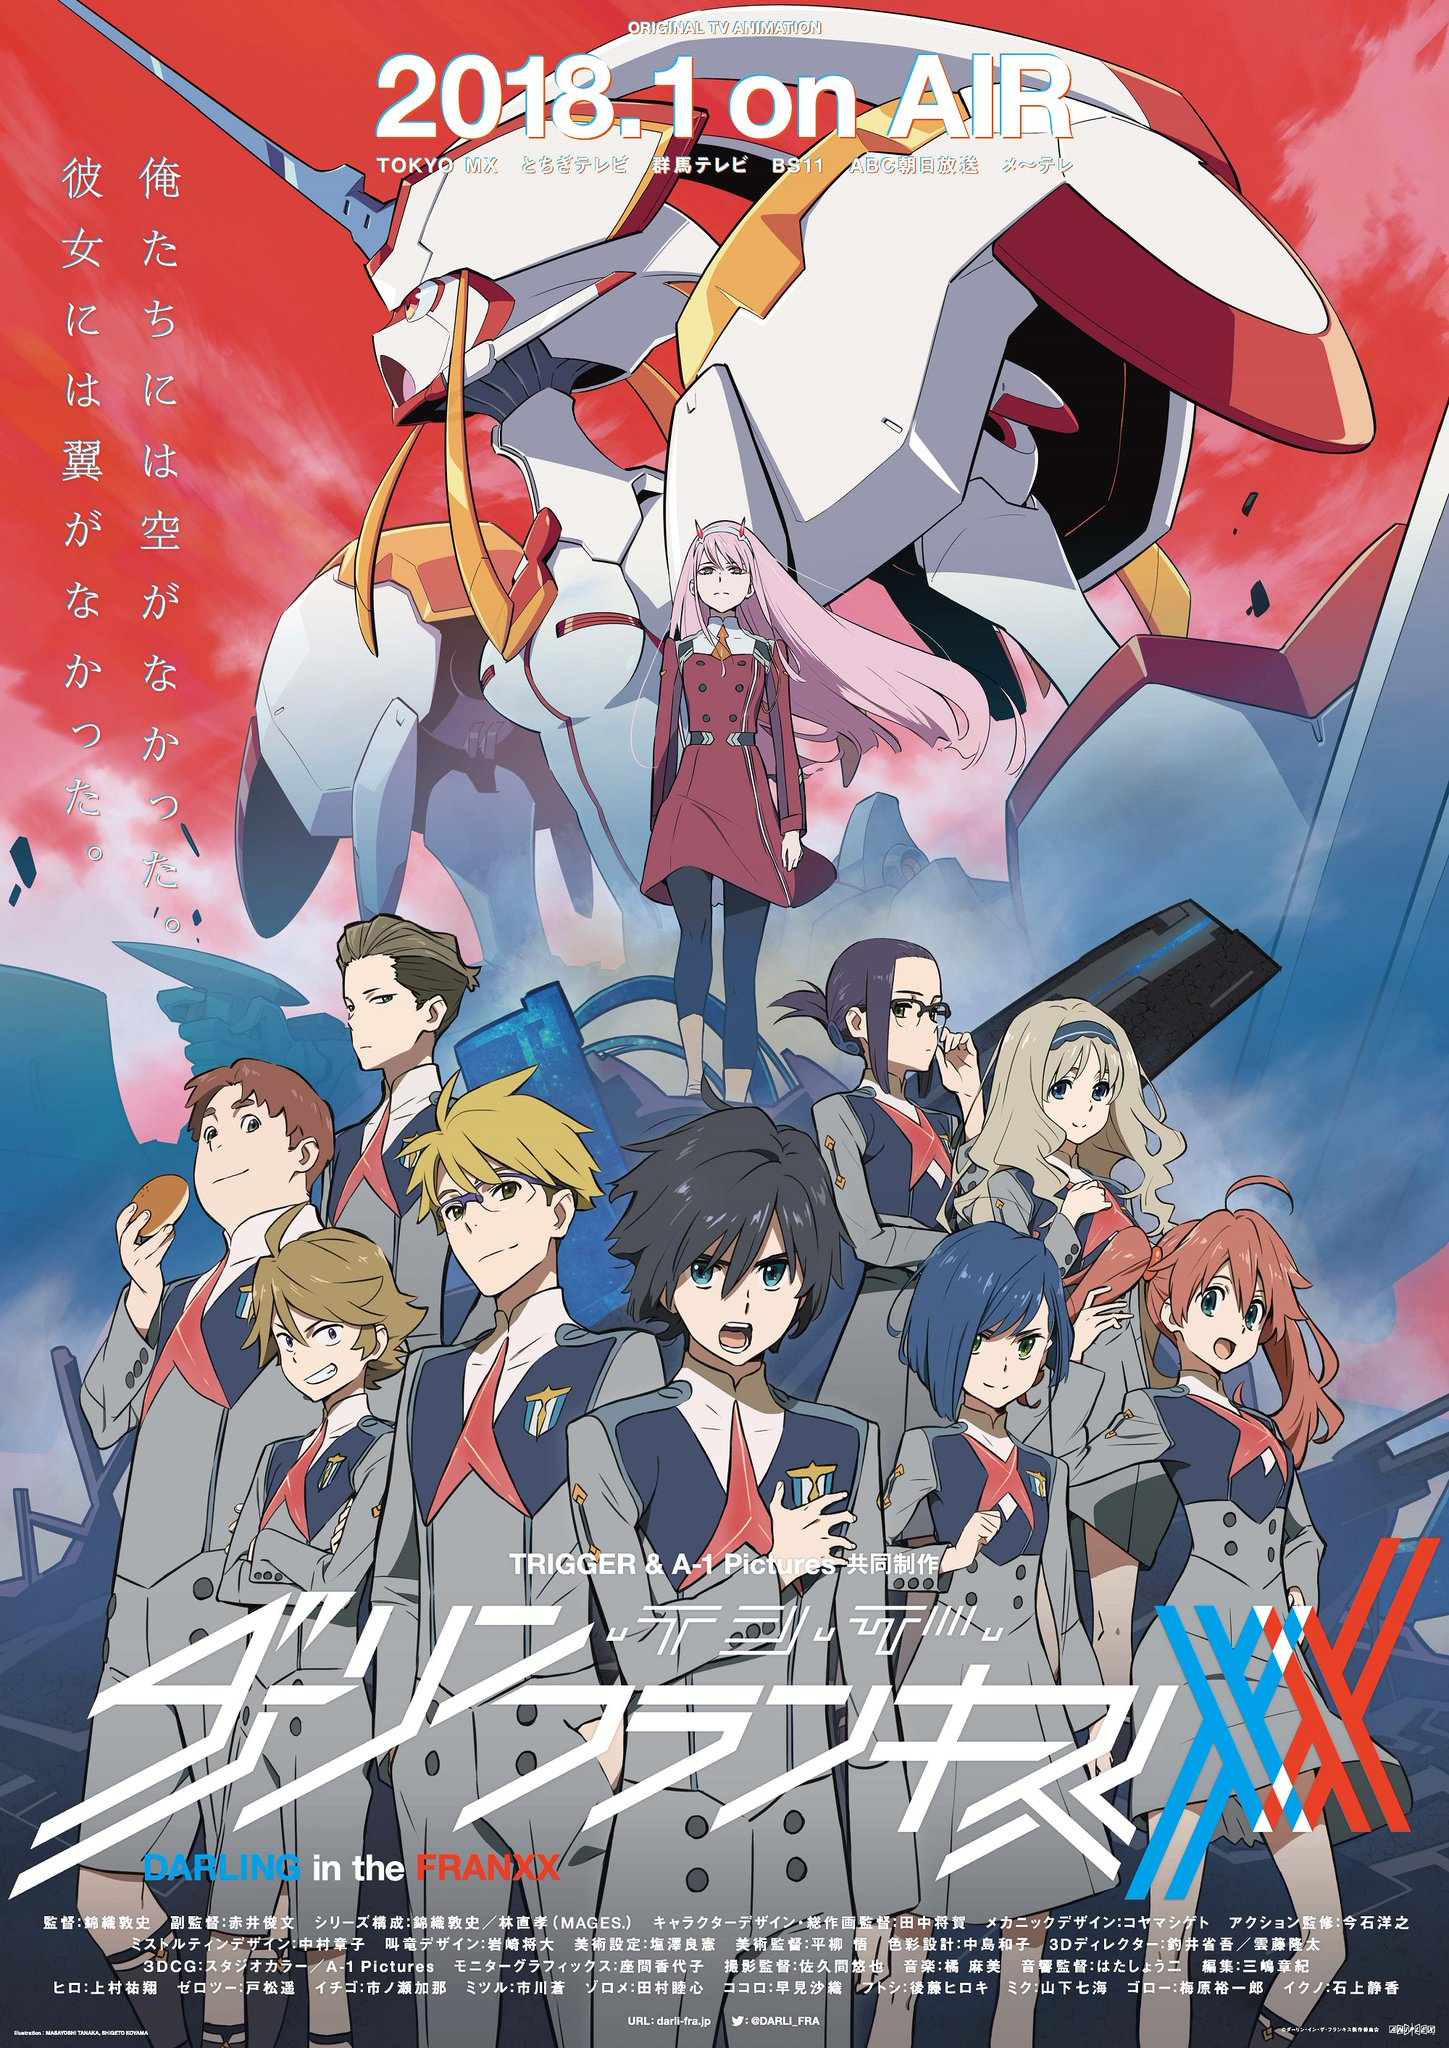 [ANIME/MANGA] Darling in the FranXX G20r